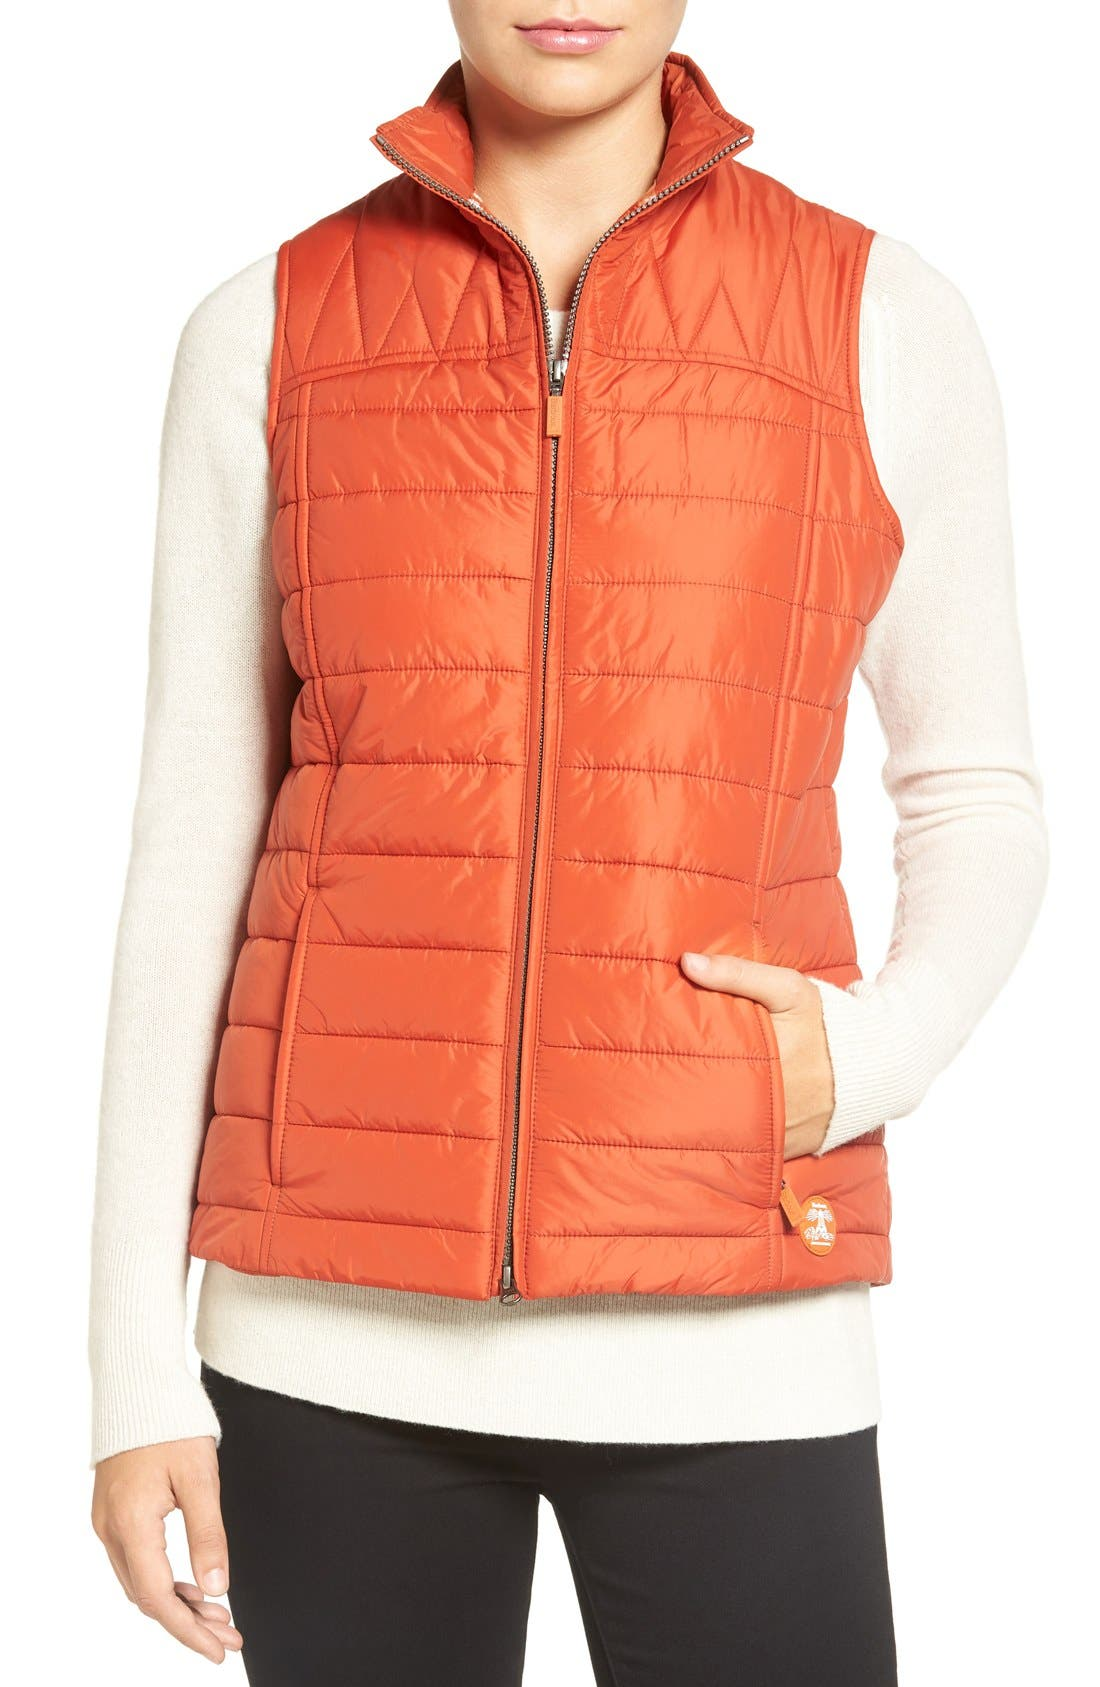 Barbour 'Brae' Quilted Vest